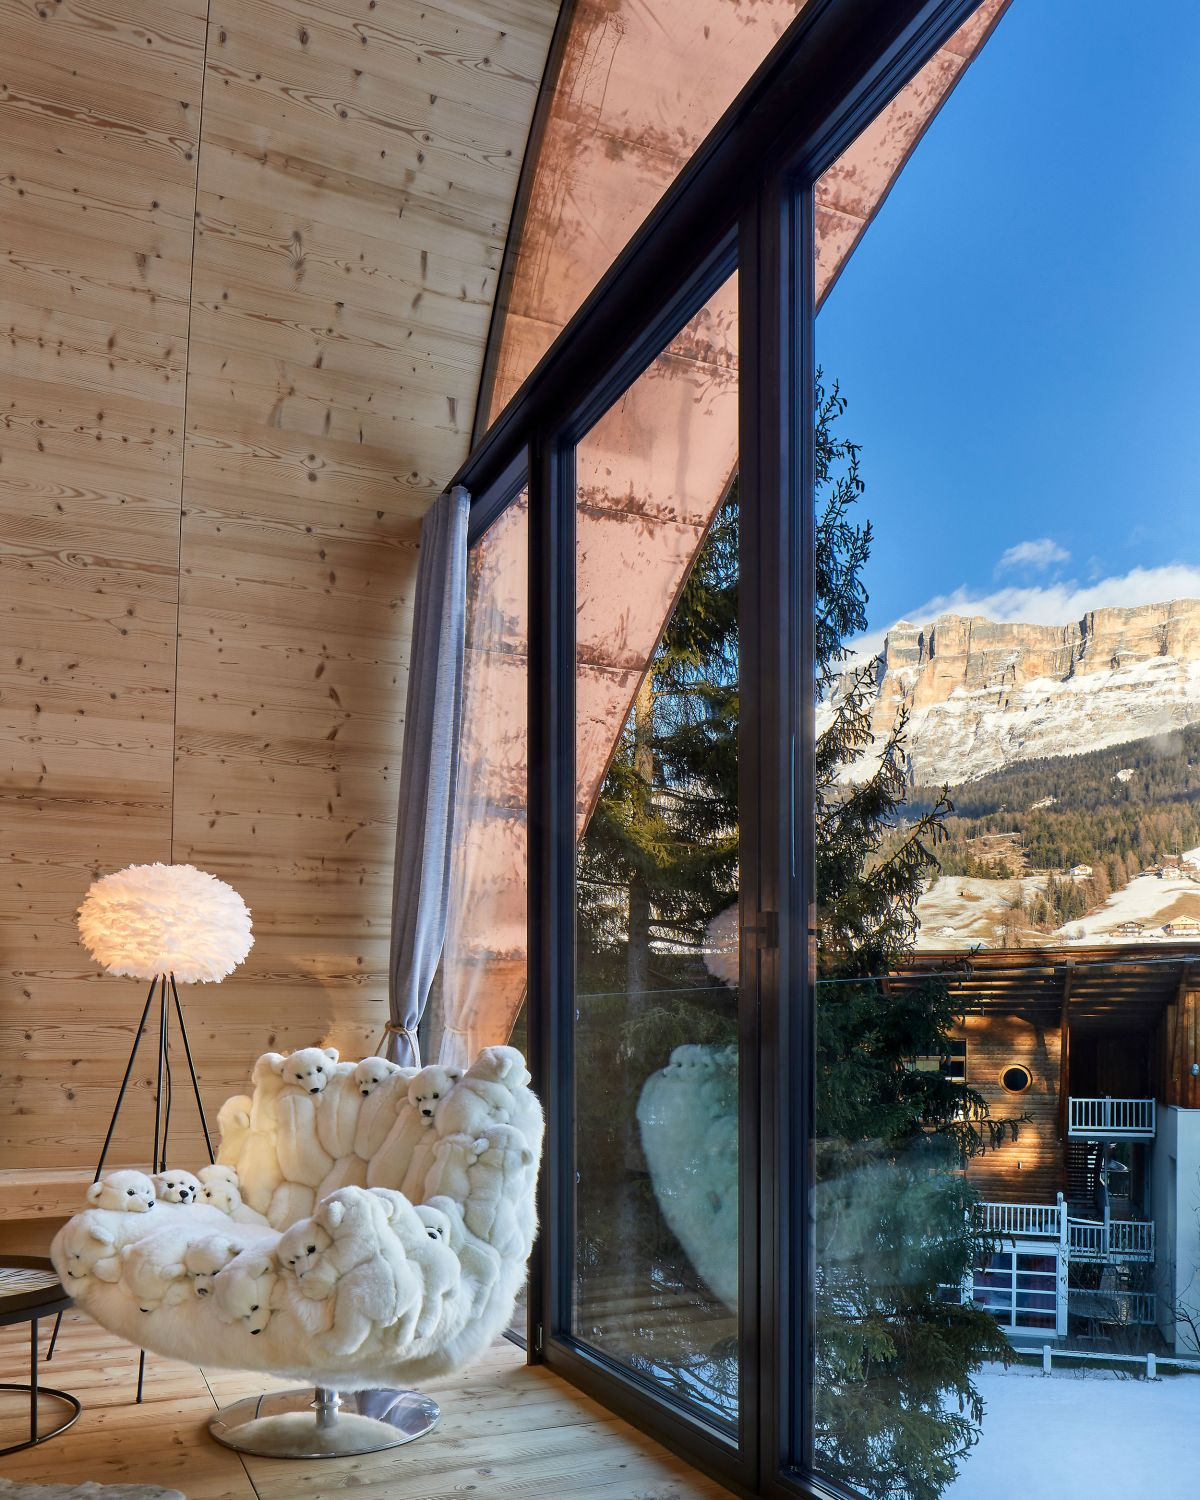 The chalet is insulated with wooden fibers and maintains a very pleasant temperature throughout the winter